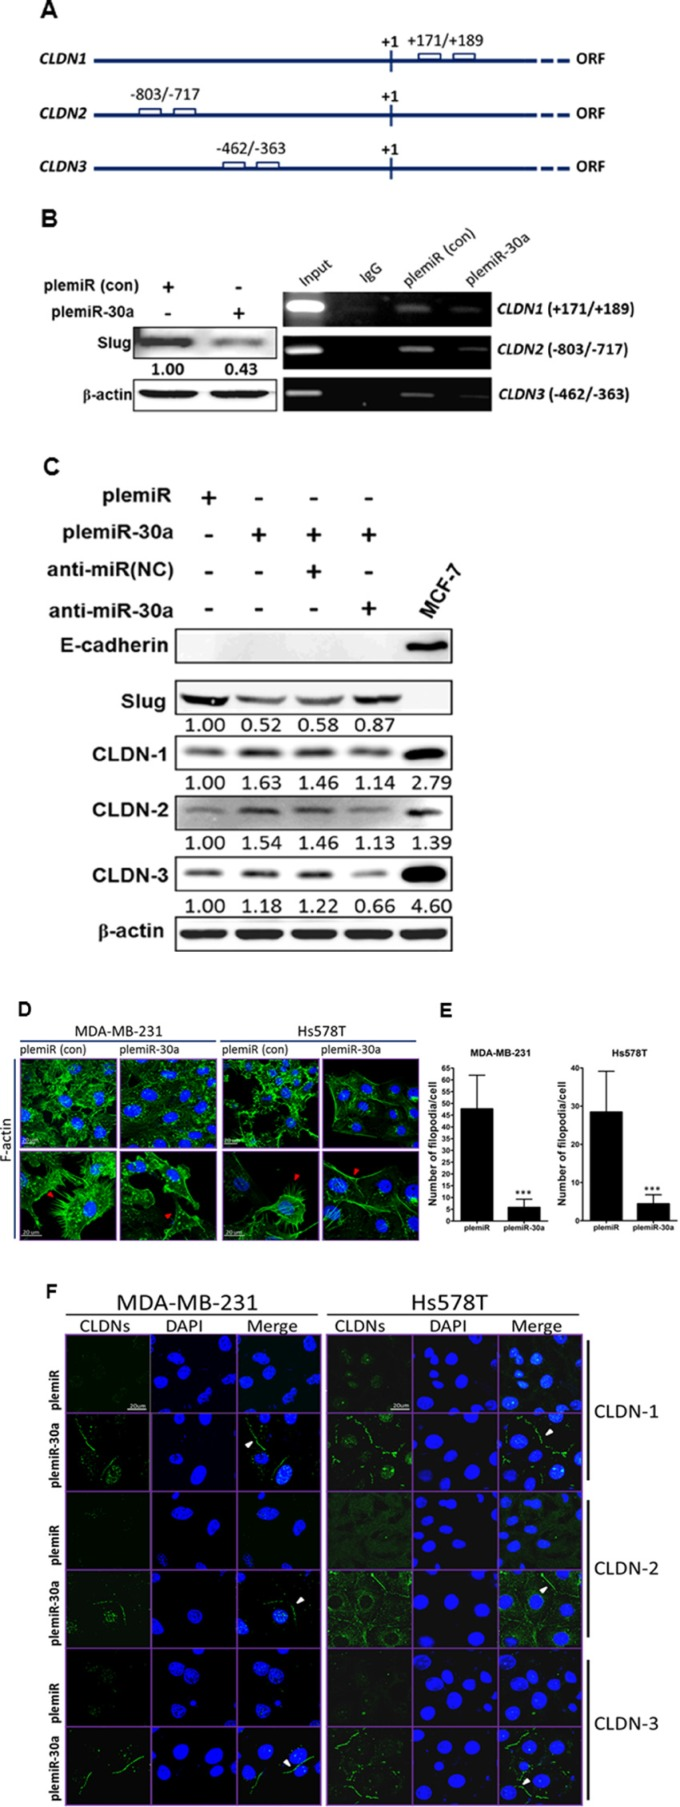 Claudin expression is enhanced by the miR-30a/Slug axis ( A ) Schematic of the E-boxes in the promoter regions of human CLDN1 , CLDN2 , and CLDN3 . The starting point (+1) indicates the transcription initiation in the open reading frame (ORF) of the gene. ( B ) Western blotting (anti-Slug) of MDA-MB-231 breast cancer cell lysates after lentiviral transduction of miR-30a (left panel). PCR analysis of the genes encoding CLDN-1, -2, and -3 after ChIP in the presence of anti-Slug or anti-IgG from control MDA-MB-231/plemiR cells (con) and MDA-MB-231/plemiR-30a cells (right panel). ( C ) Western blotting revealed that Slug and fascin expression in miR-30a–overexpressing cells following miR-30a knockdown (anti-miR-30a) was inversely correlated with claudin expression. NC, negative control. ( D ) Microfilaments in MDA-MB-231 and Hs578T cells expressing plemiR-30a or the control construct plemiR were detected with Alexa Fluor 488–conjugated phalloidin (green) as indicated by red arrows. ( E ) The number of filopodial tips per cell as averaged from 50 cells per condition was calculated. The data represent the mean ± SD from three independent experiments. *** P